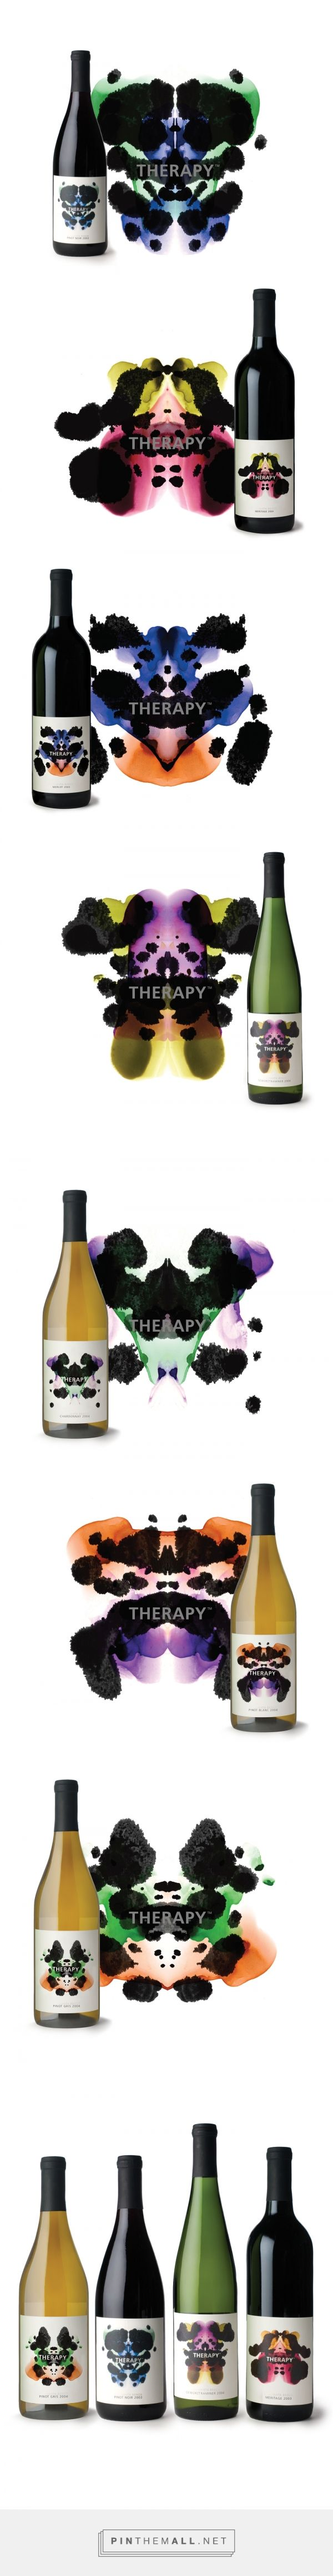 Art Direction And Packaging For Award Winning Therapy Vineyards On Behance By Branever Design Vancouver BC Curated Diva PD